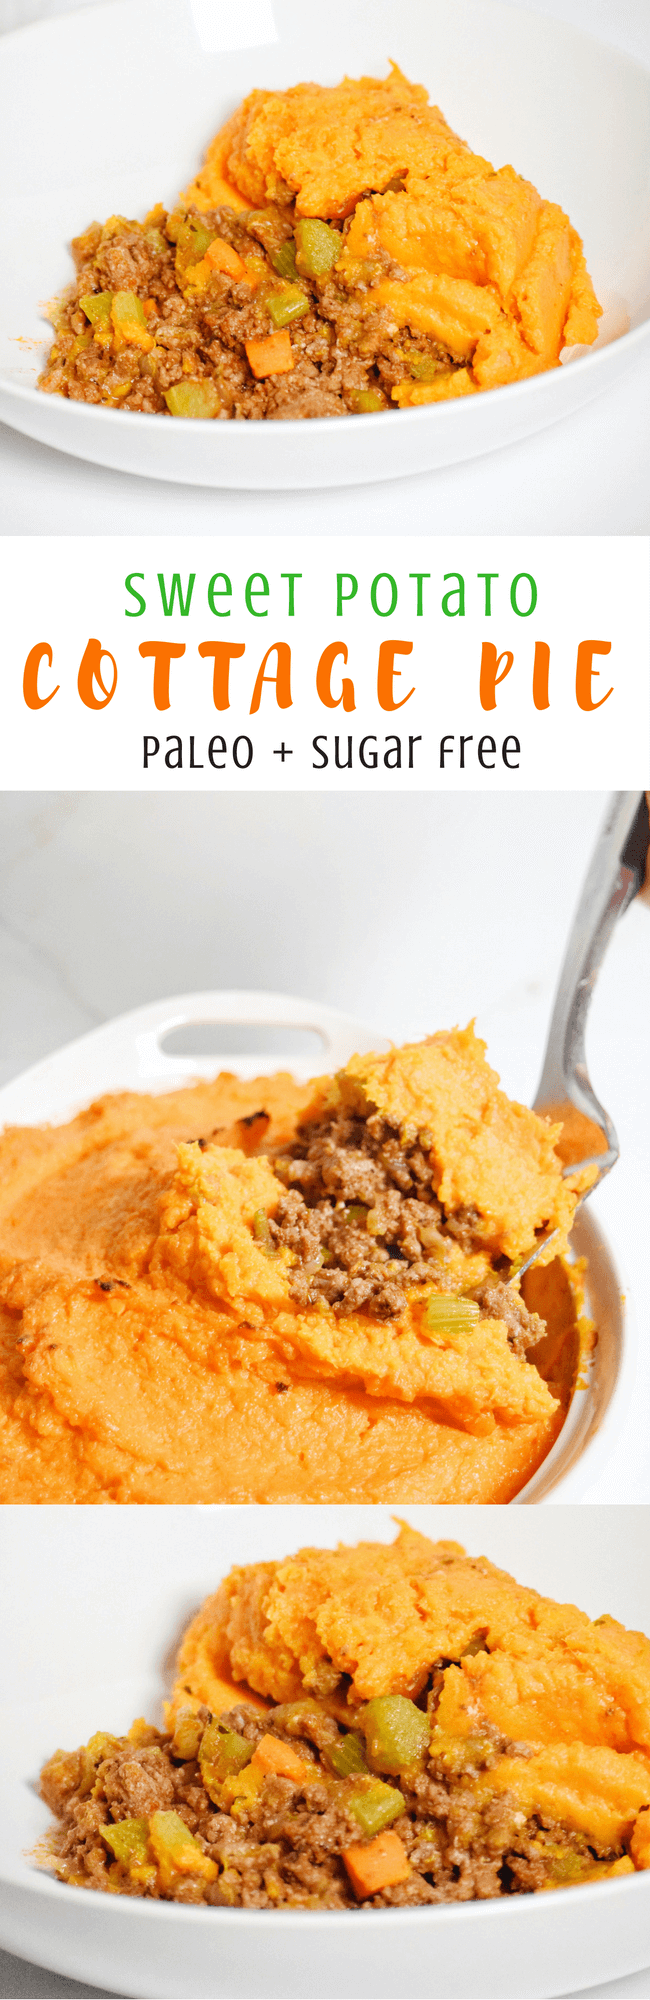 Paleo Sweet Potato Cottage Pie (Whole30) | Personally Paleo